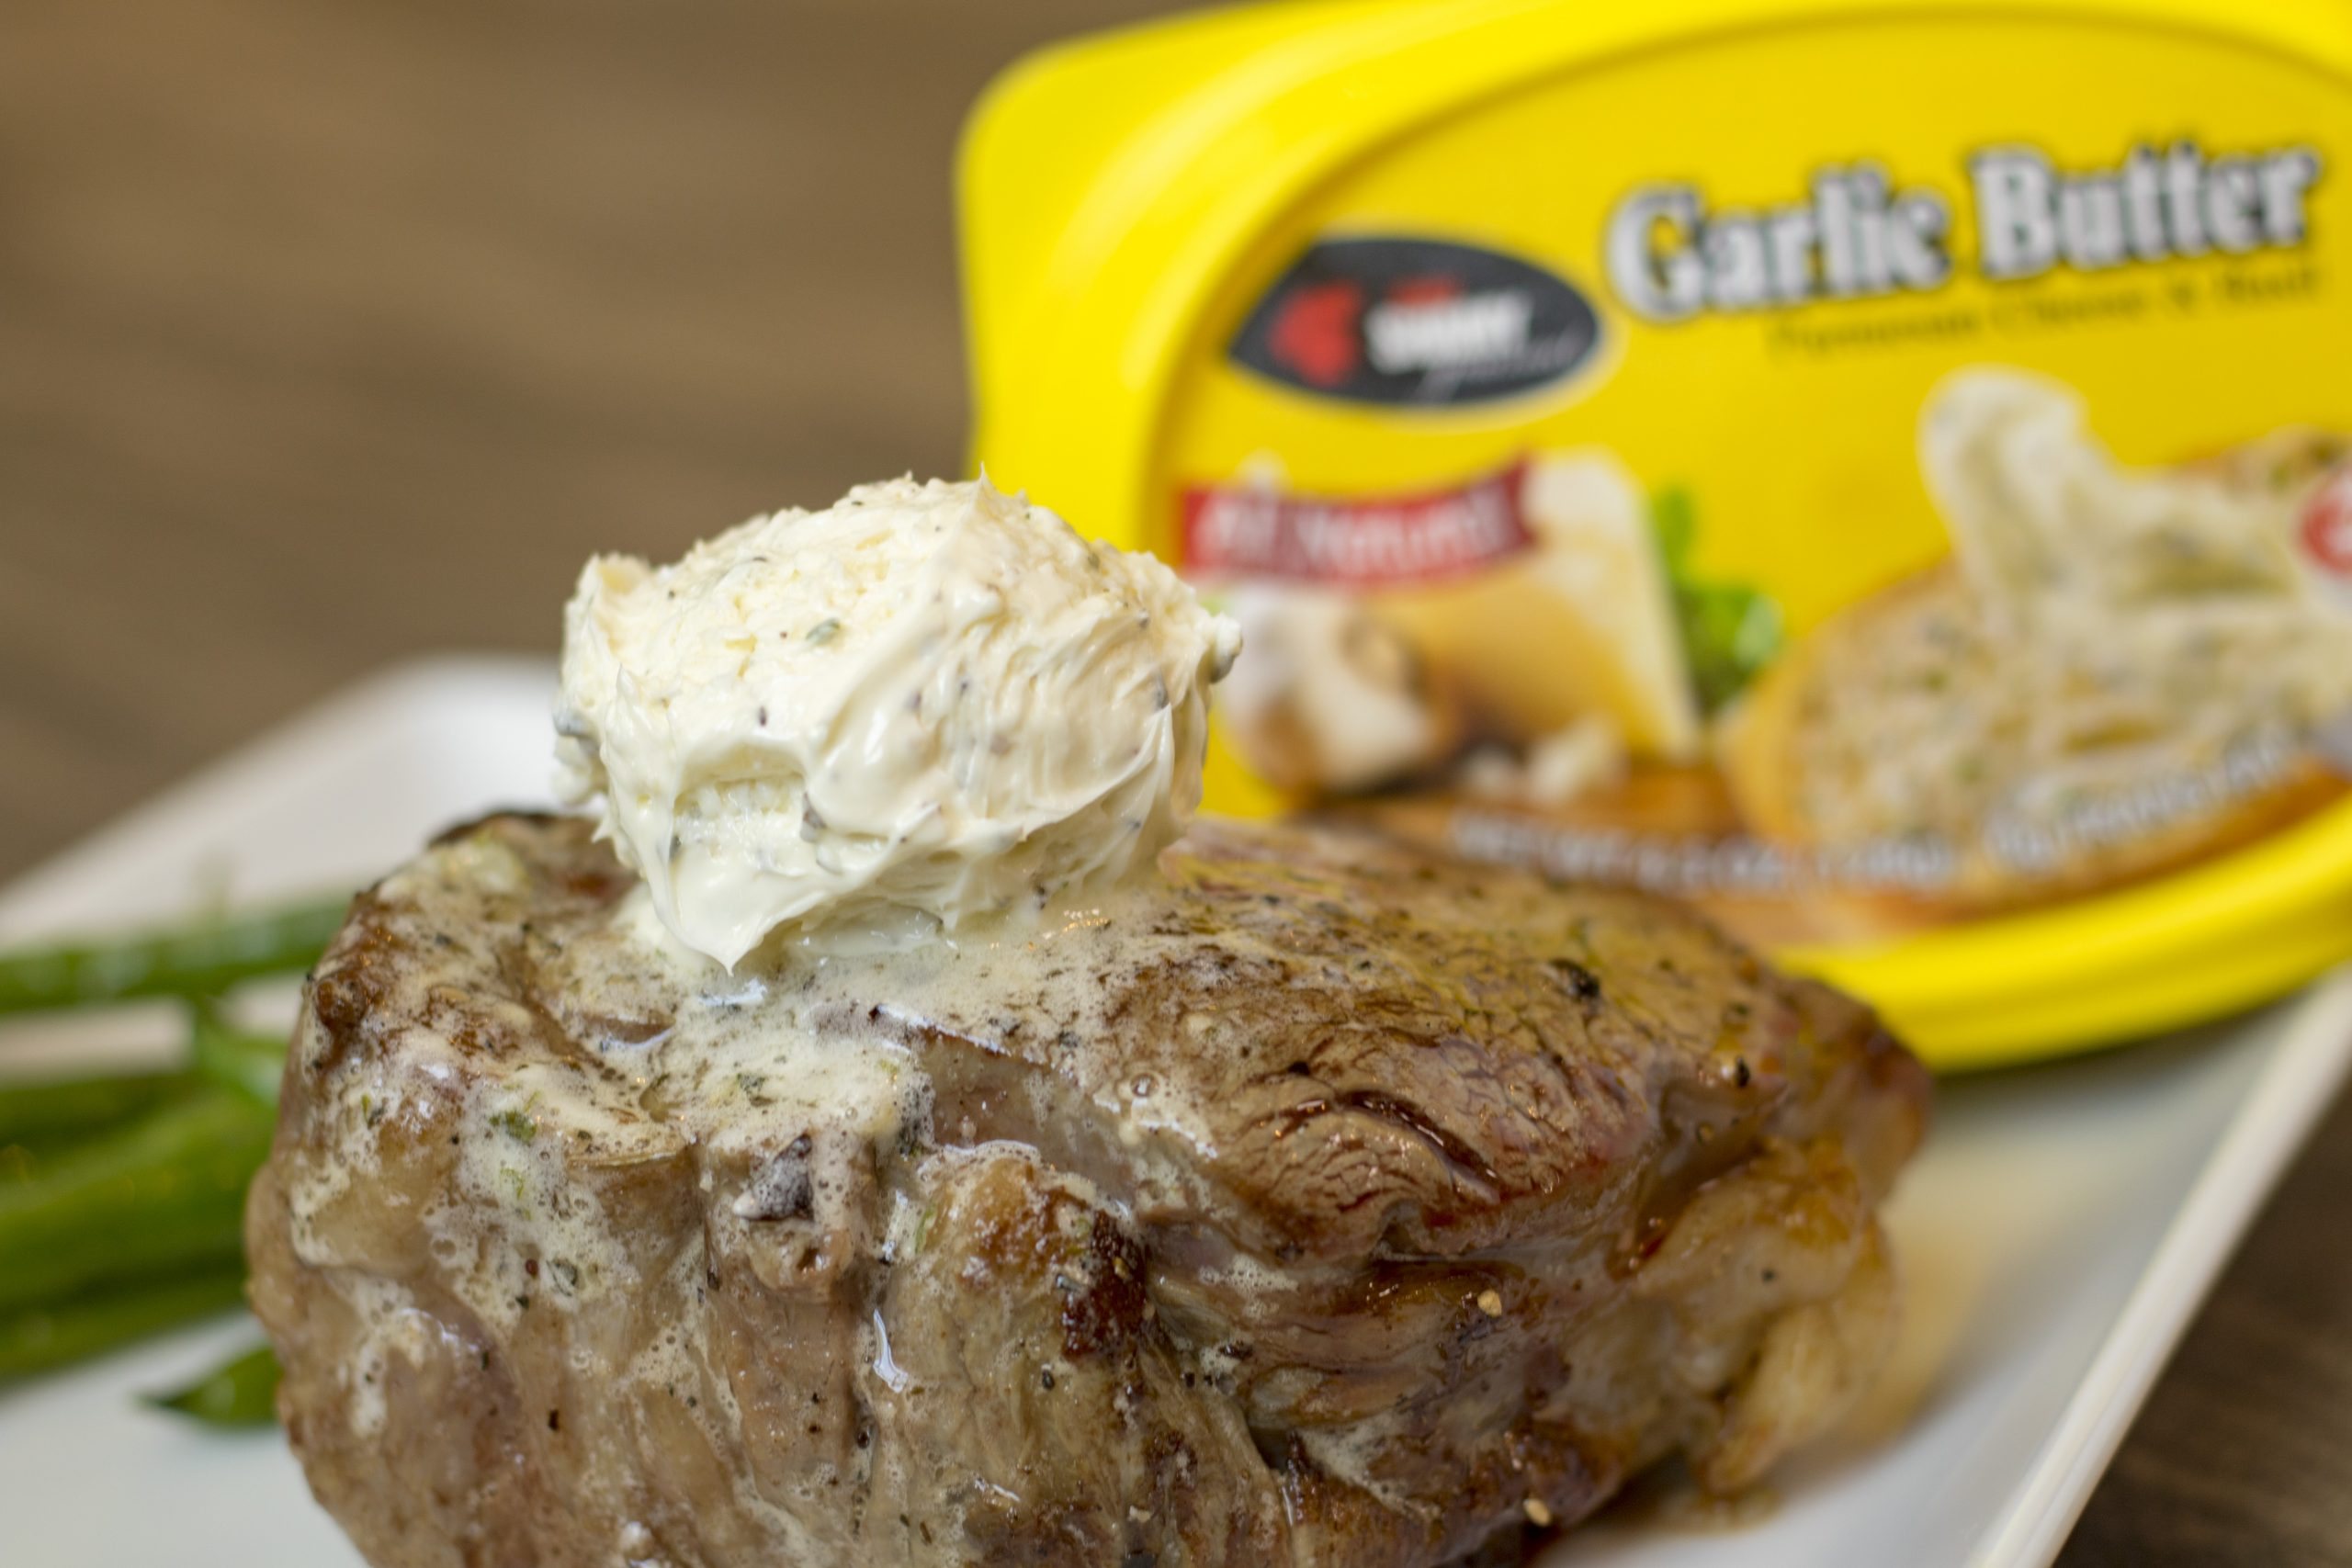 Filet mignon with garlic butter